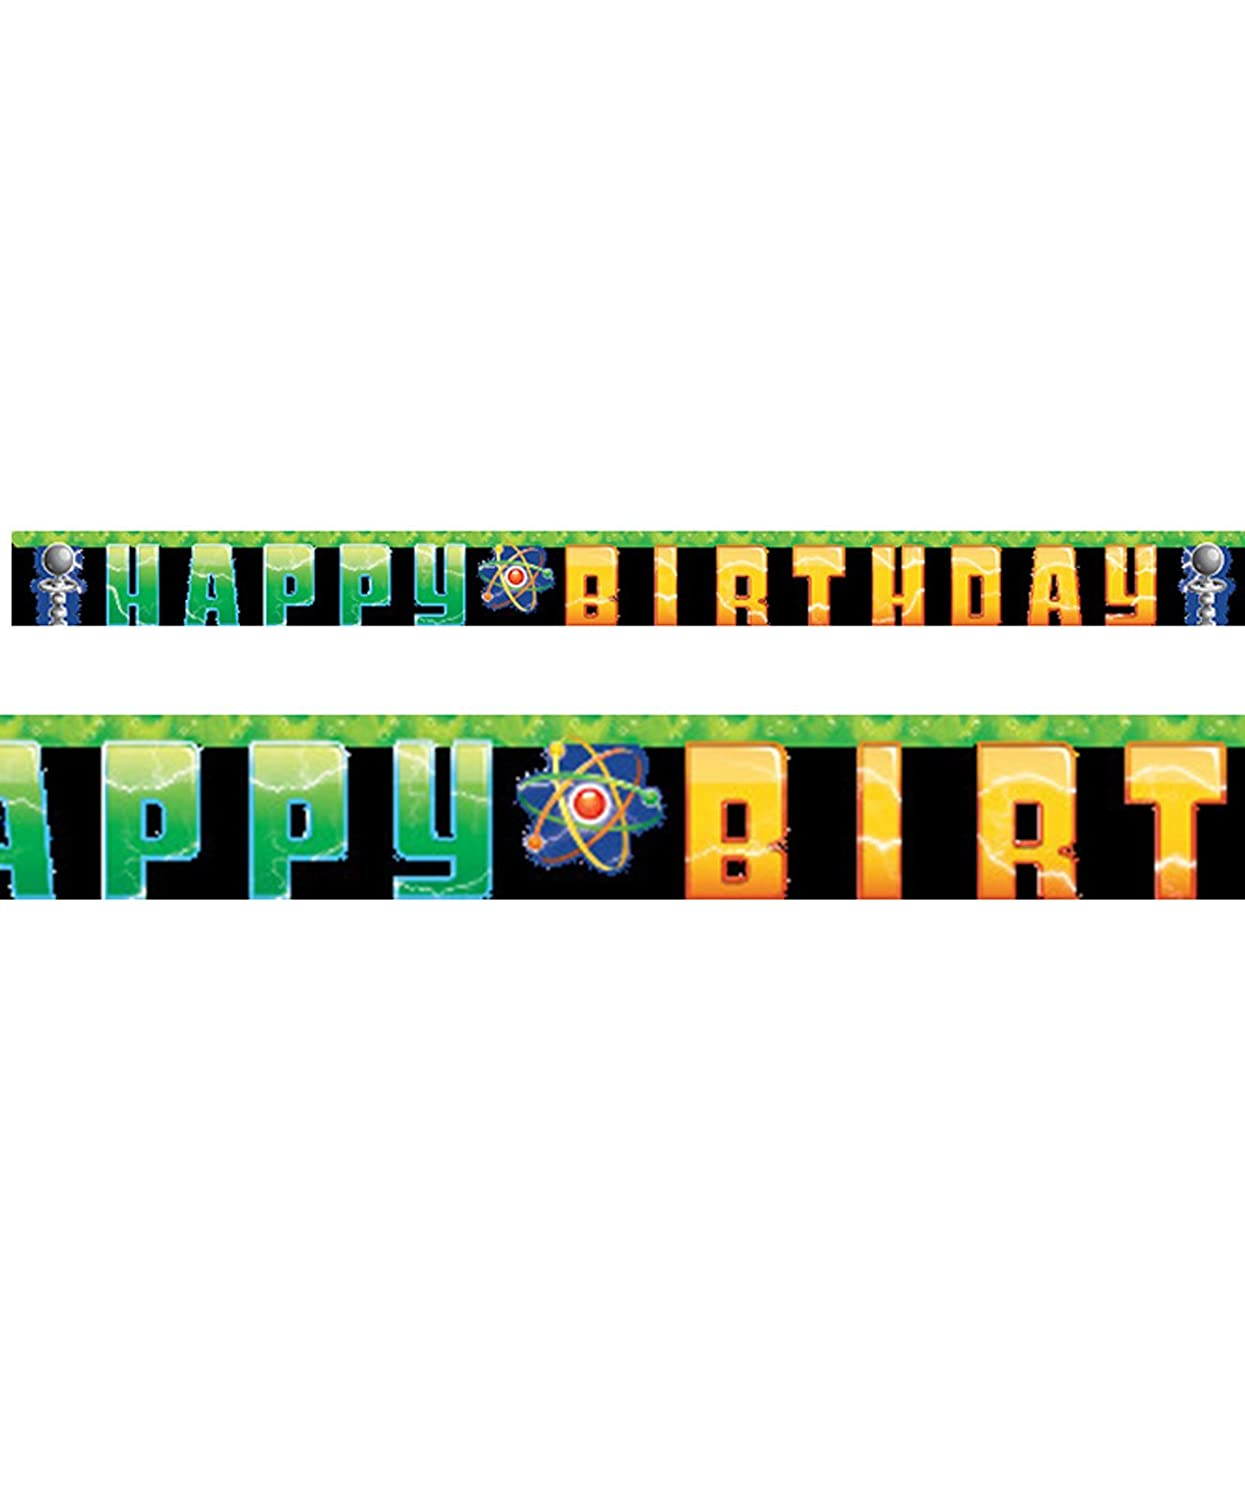 Creative Converting Mad Scientist Letter Banner 2724612328410